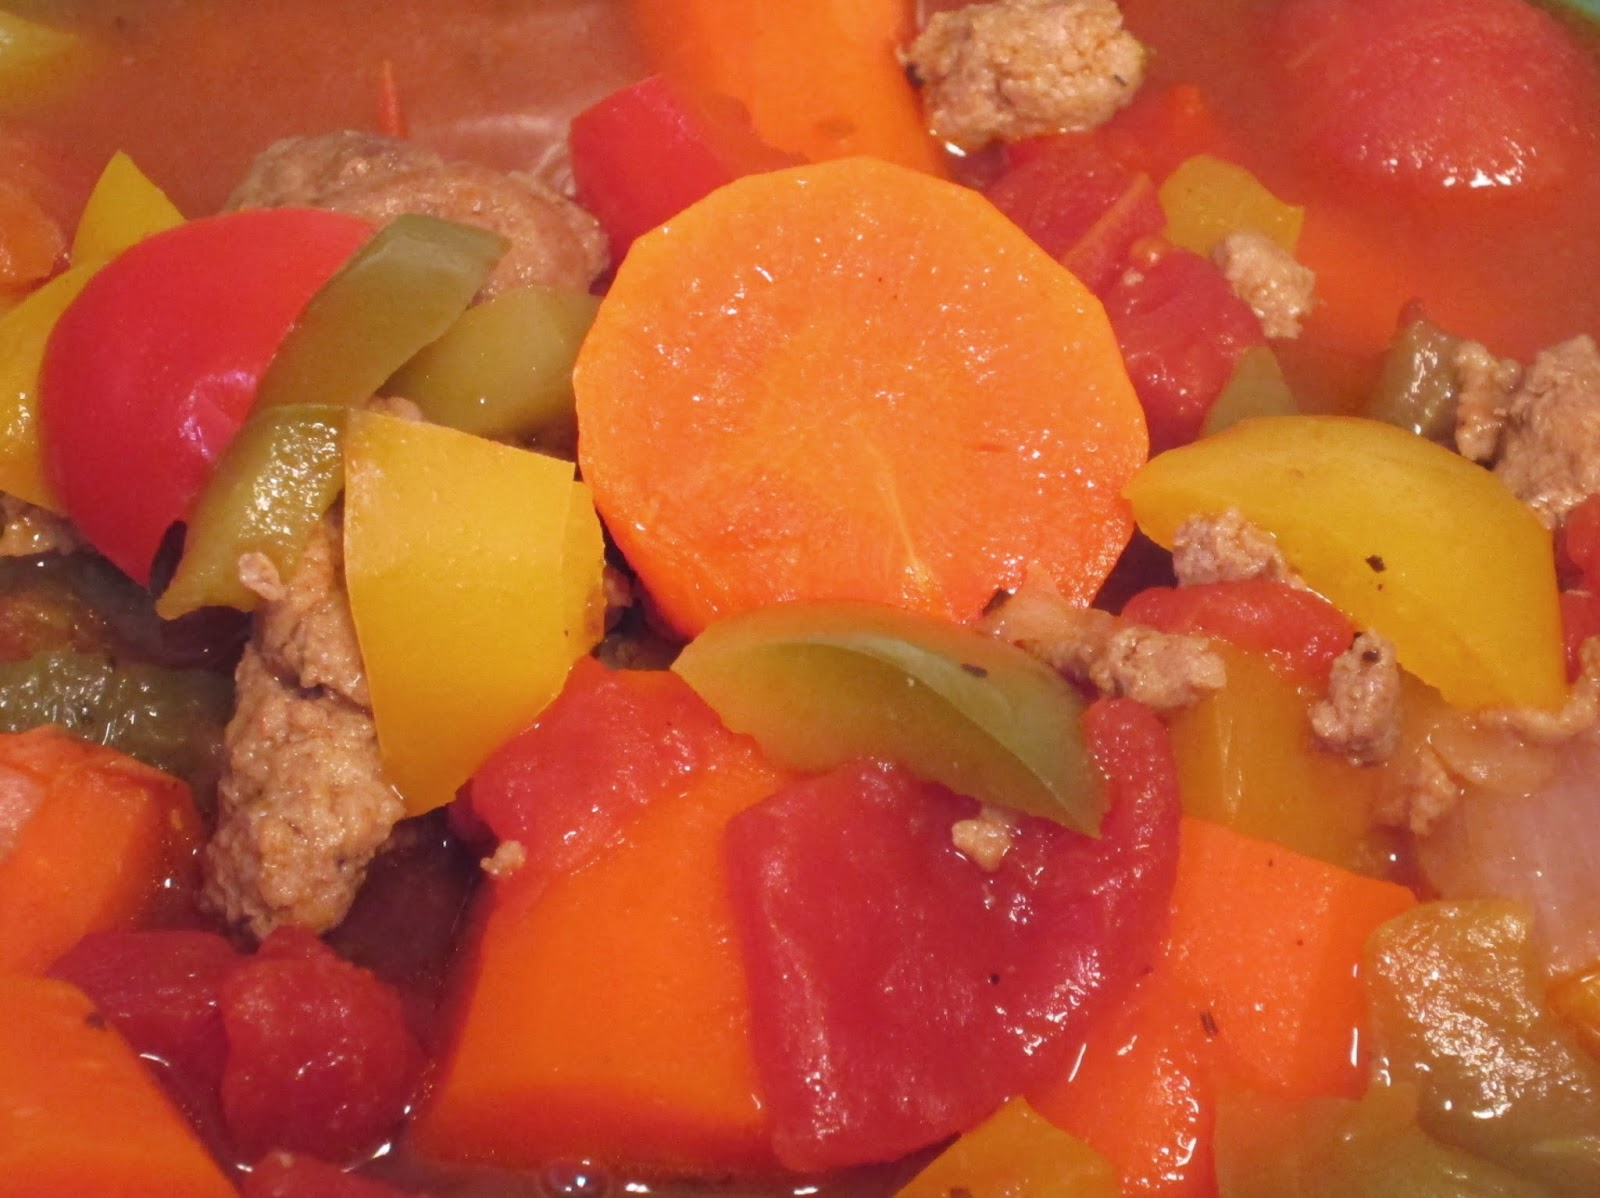 Carrots, bell peppers, tomatoes, and ground turkey in a chicken broth.